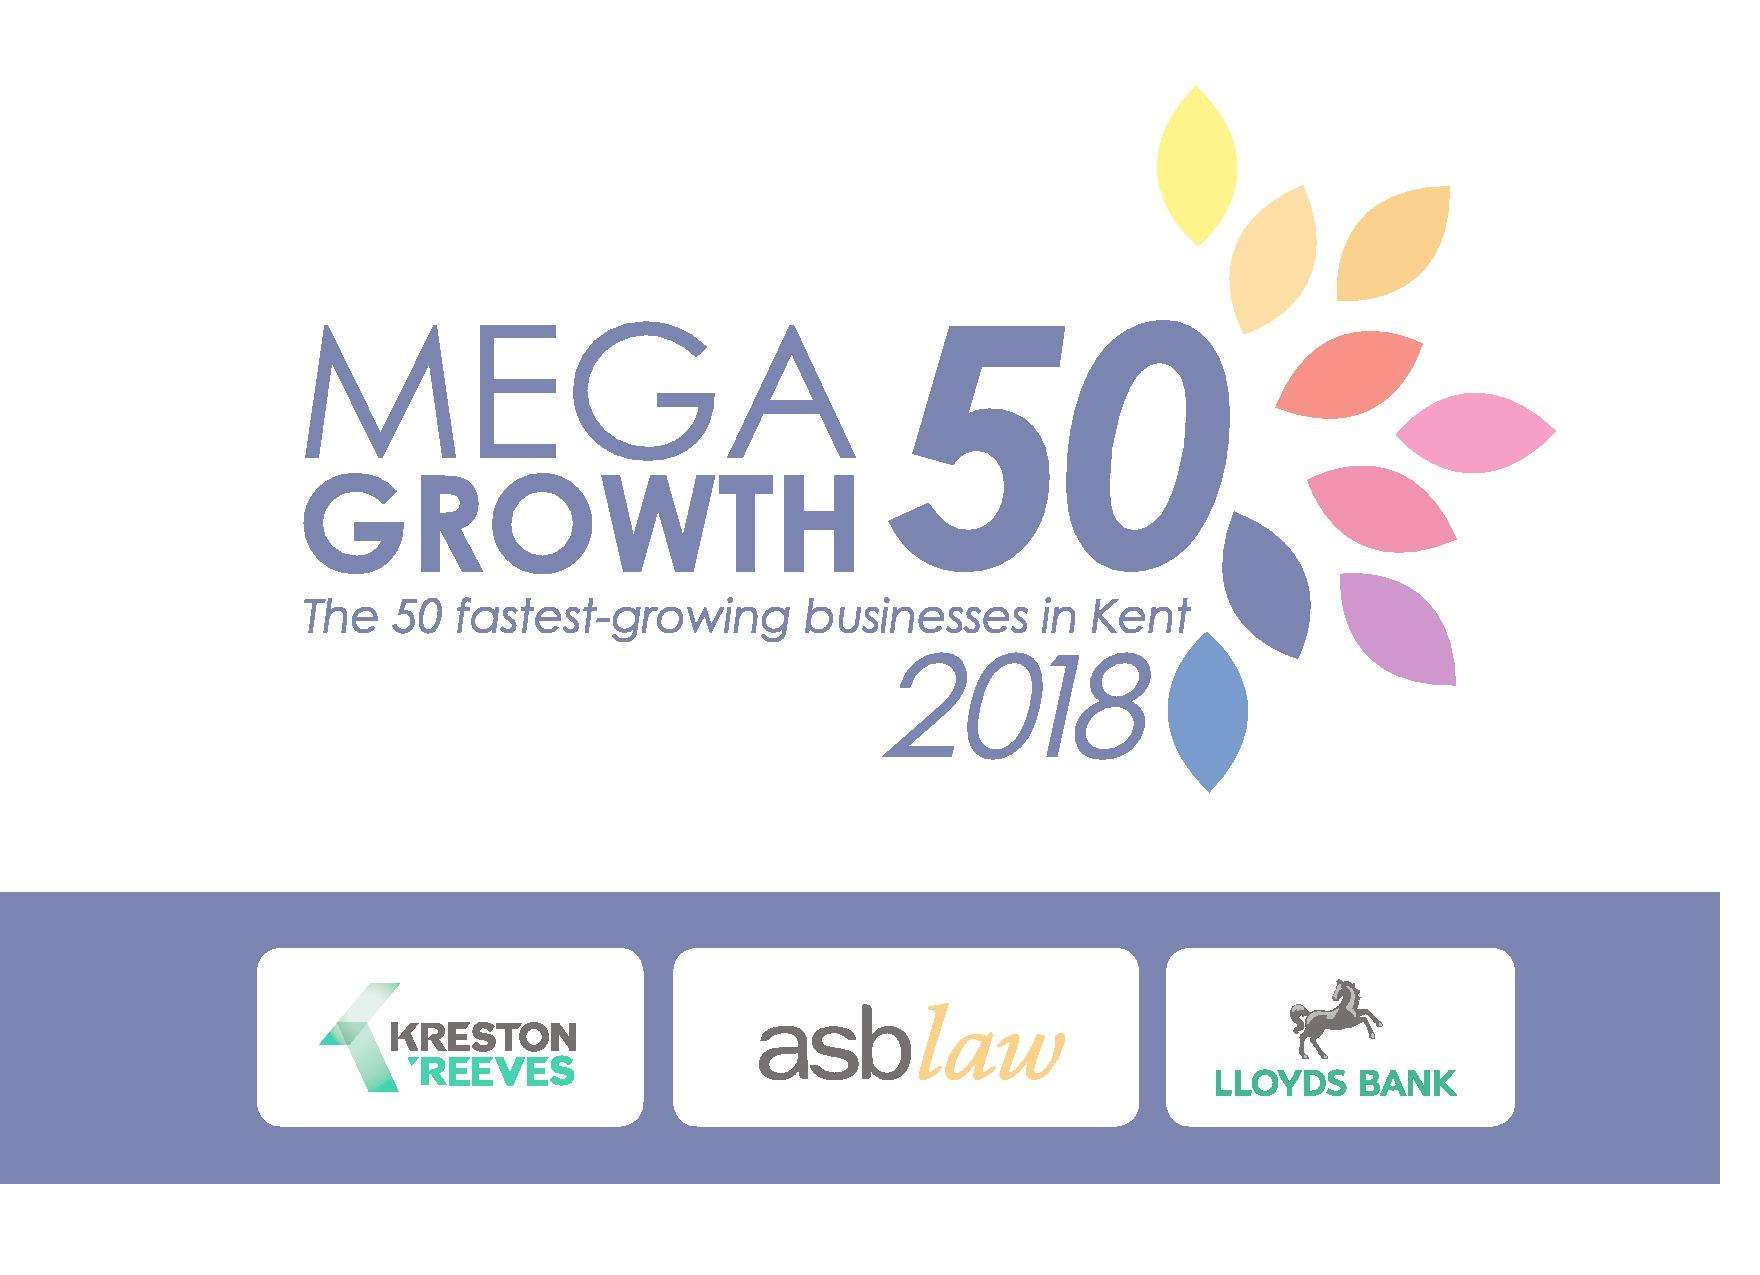 MegaGrowth 50 list was unveiled today in Maidstone (5223422)